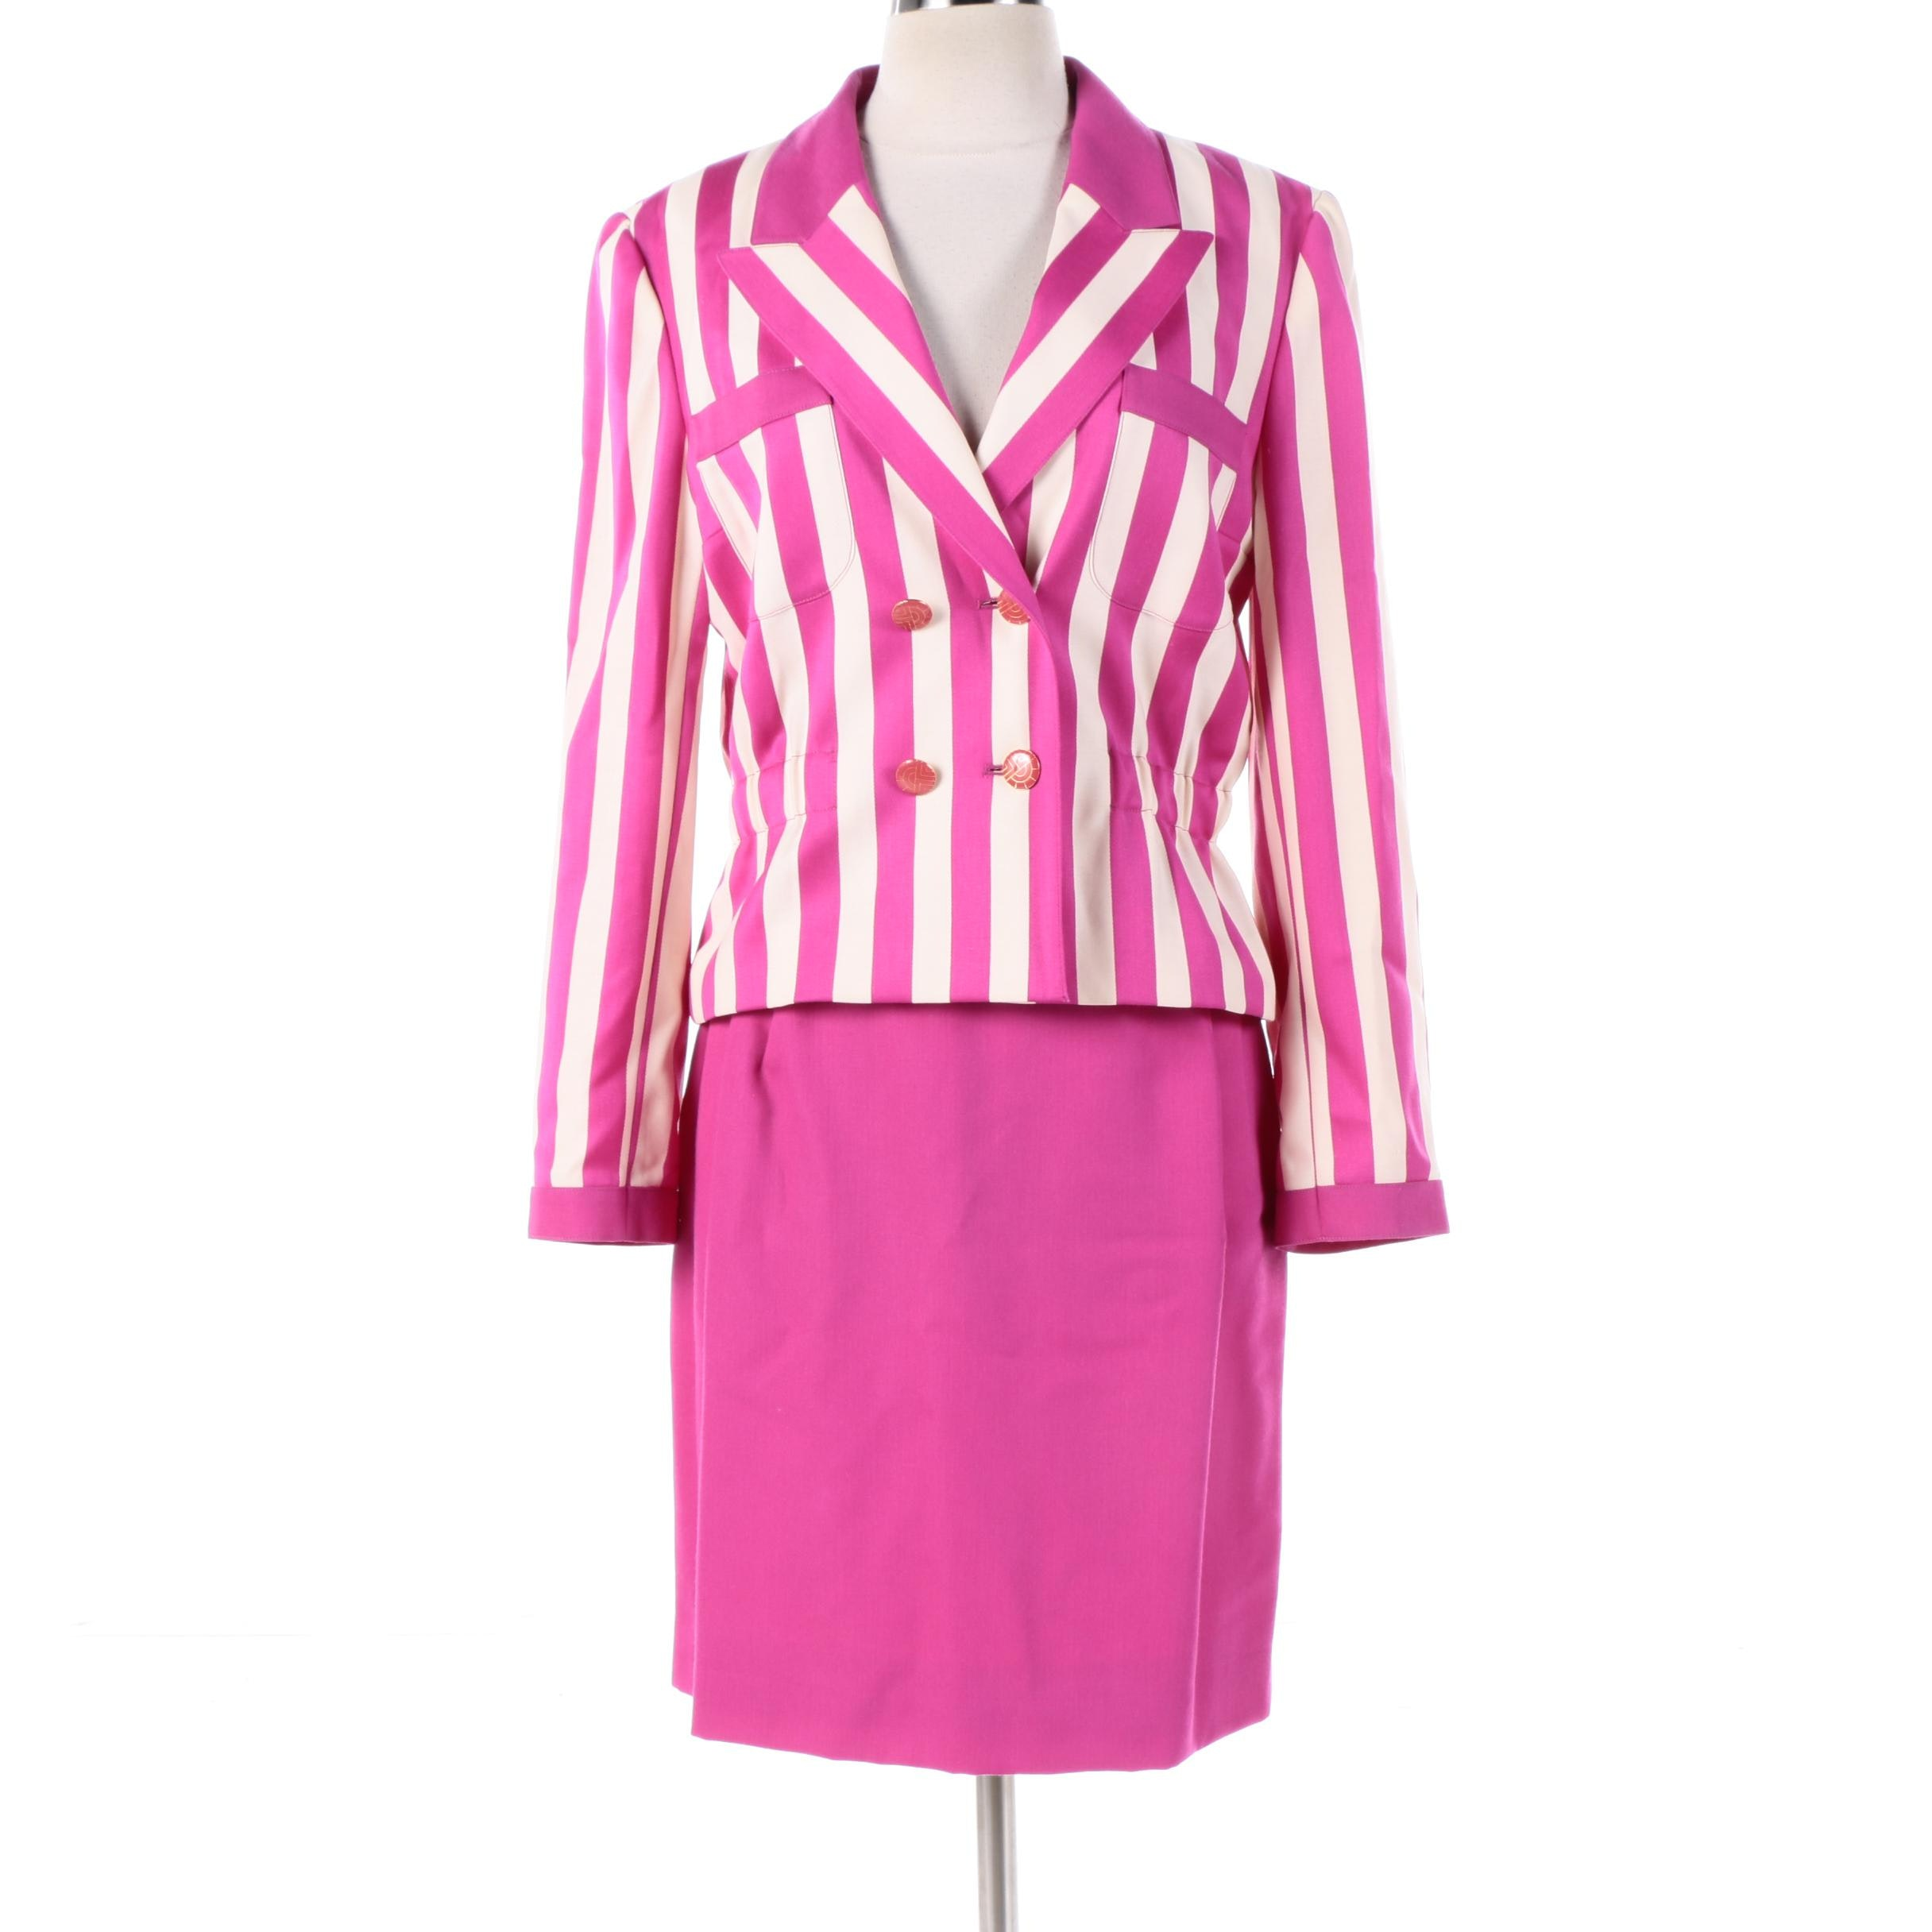 Louis Féraud Fuchsia and White Double-Breasted Skirt Suit